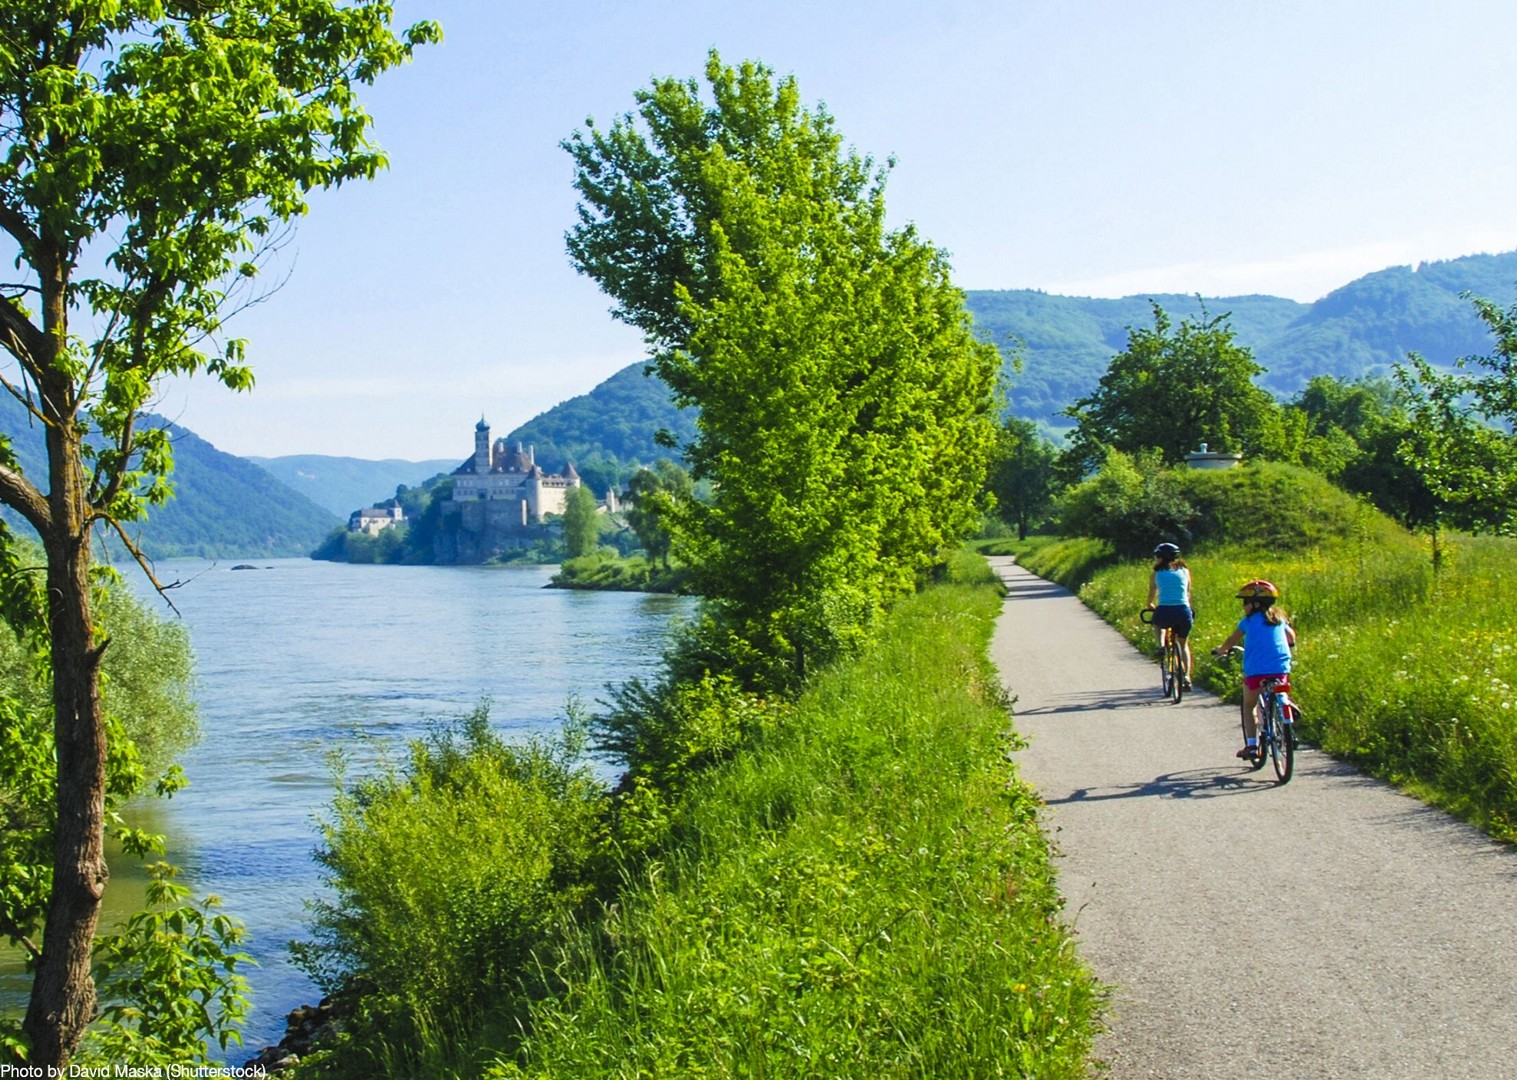 the-danube-cycle-path-10-days-germany-austria-self-guided-holiday-biking.jpg - Germany and Austria - The Danube Cyclepath (10 Days) - Self-Guided Leisure Cycling Holiday - Leisure Cycling